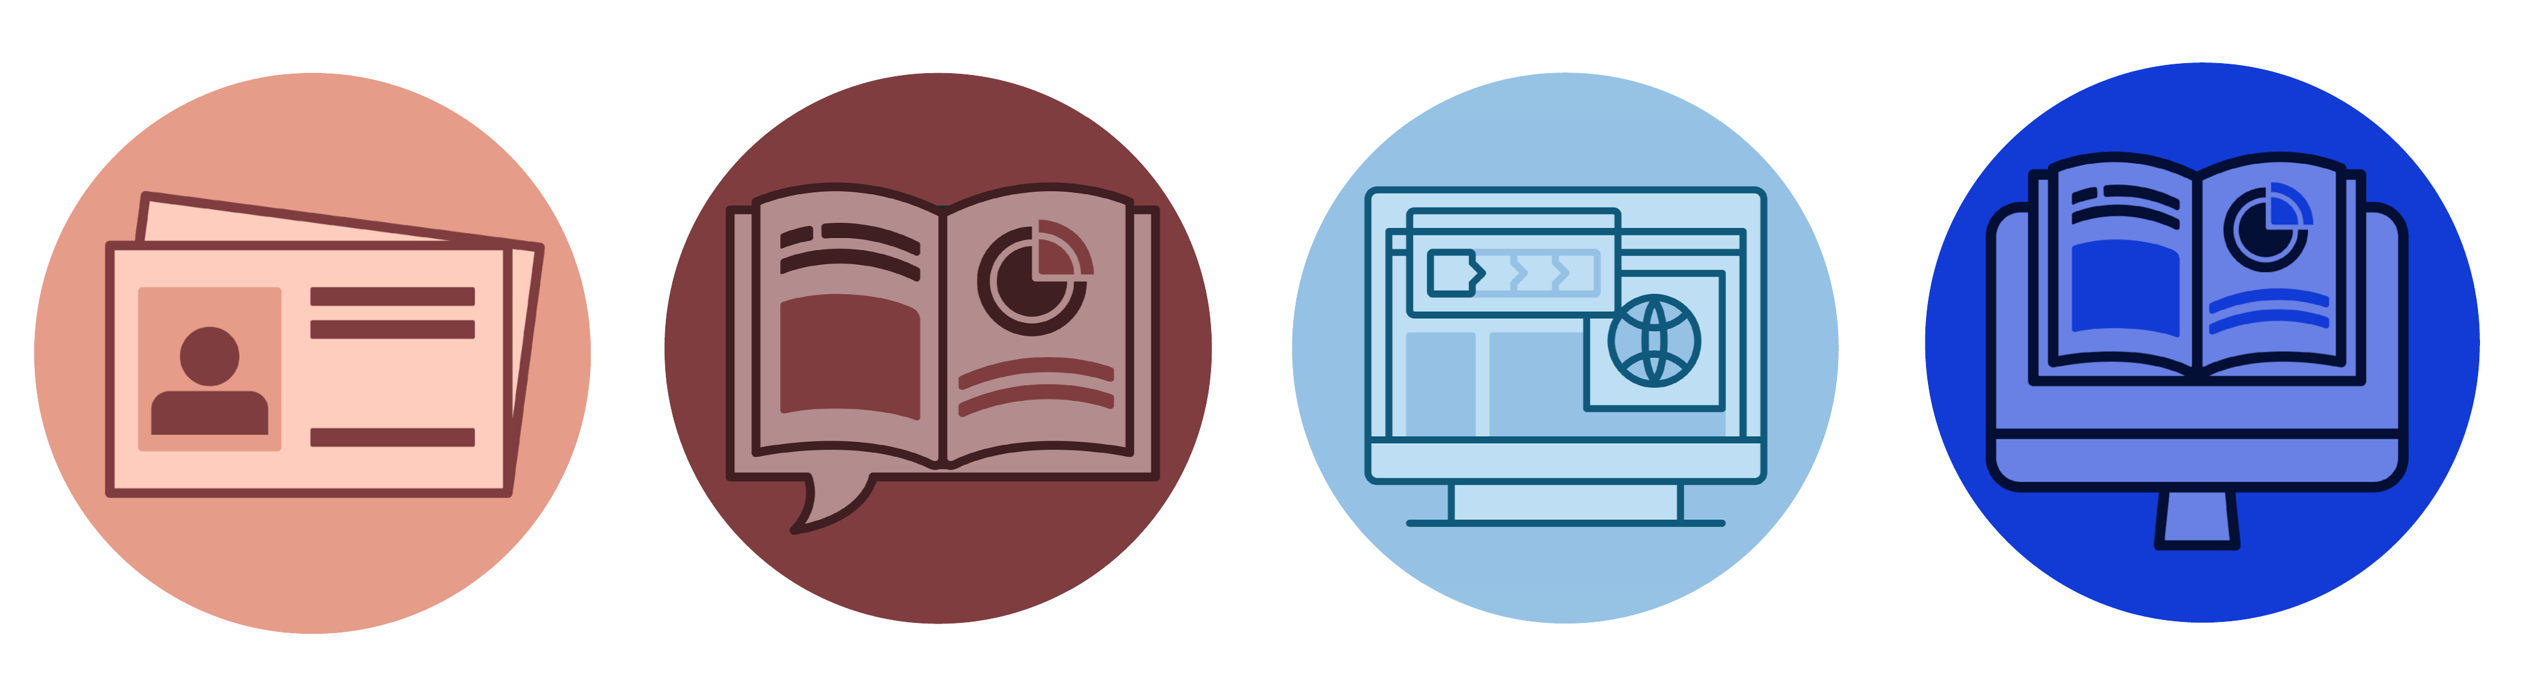 illustrative and colourful icons of the features of the site